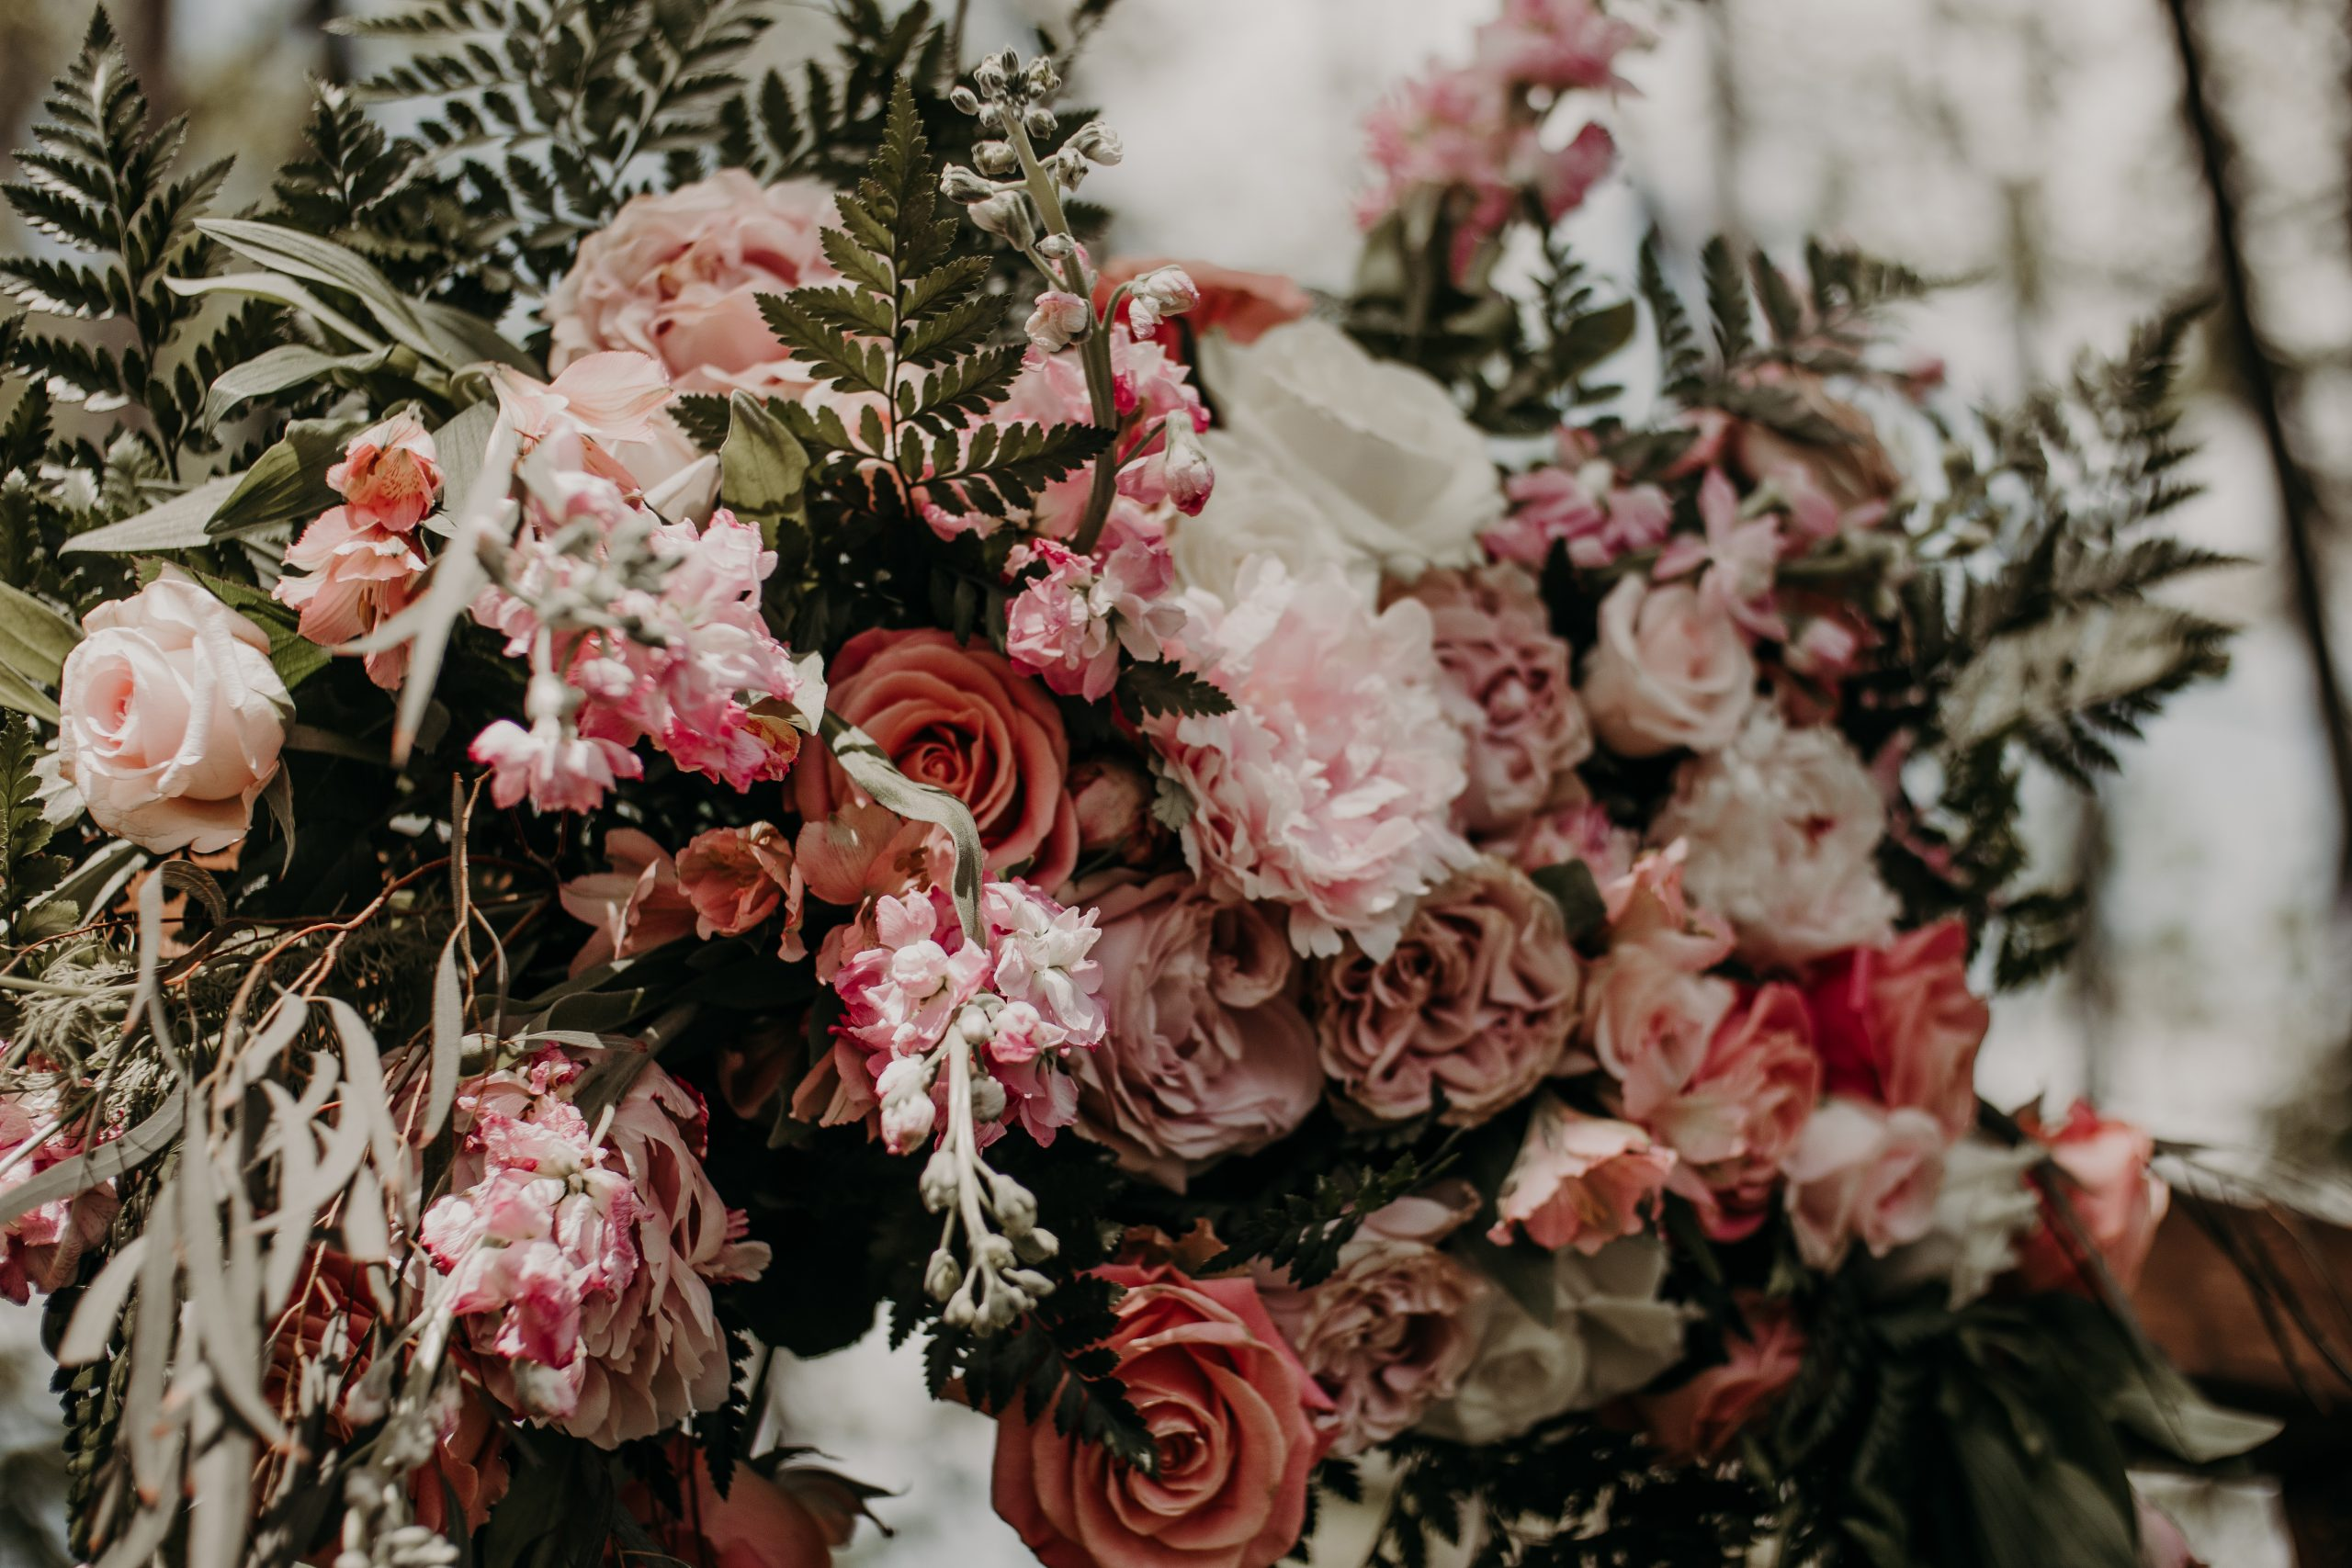 Greenery, blush pink and white flowers were a reoccurring theme. Christine and Richard wed on the Chestnut Hill Villa grounds on May of 2019. This organic ethereal styled wedding was captured by Garnet Dahlia Photography and featured on Dream Weddings.